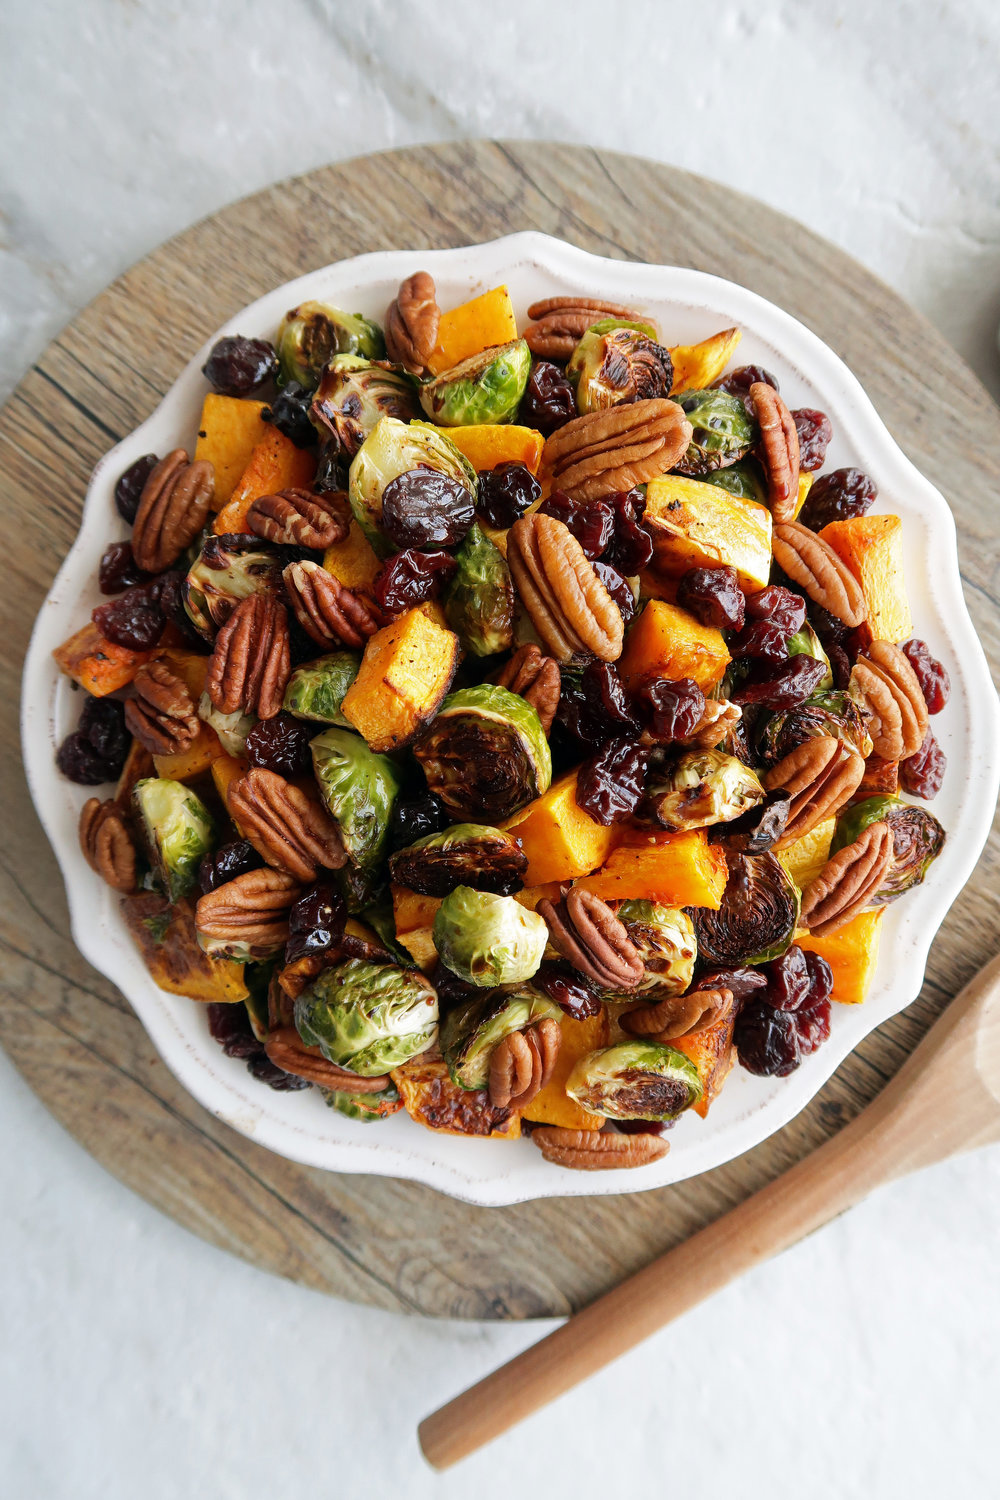 Roasted butternut squash and Brussels sprouts with pecans and dried cherries on a white plate.